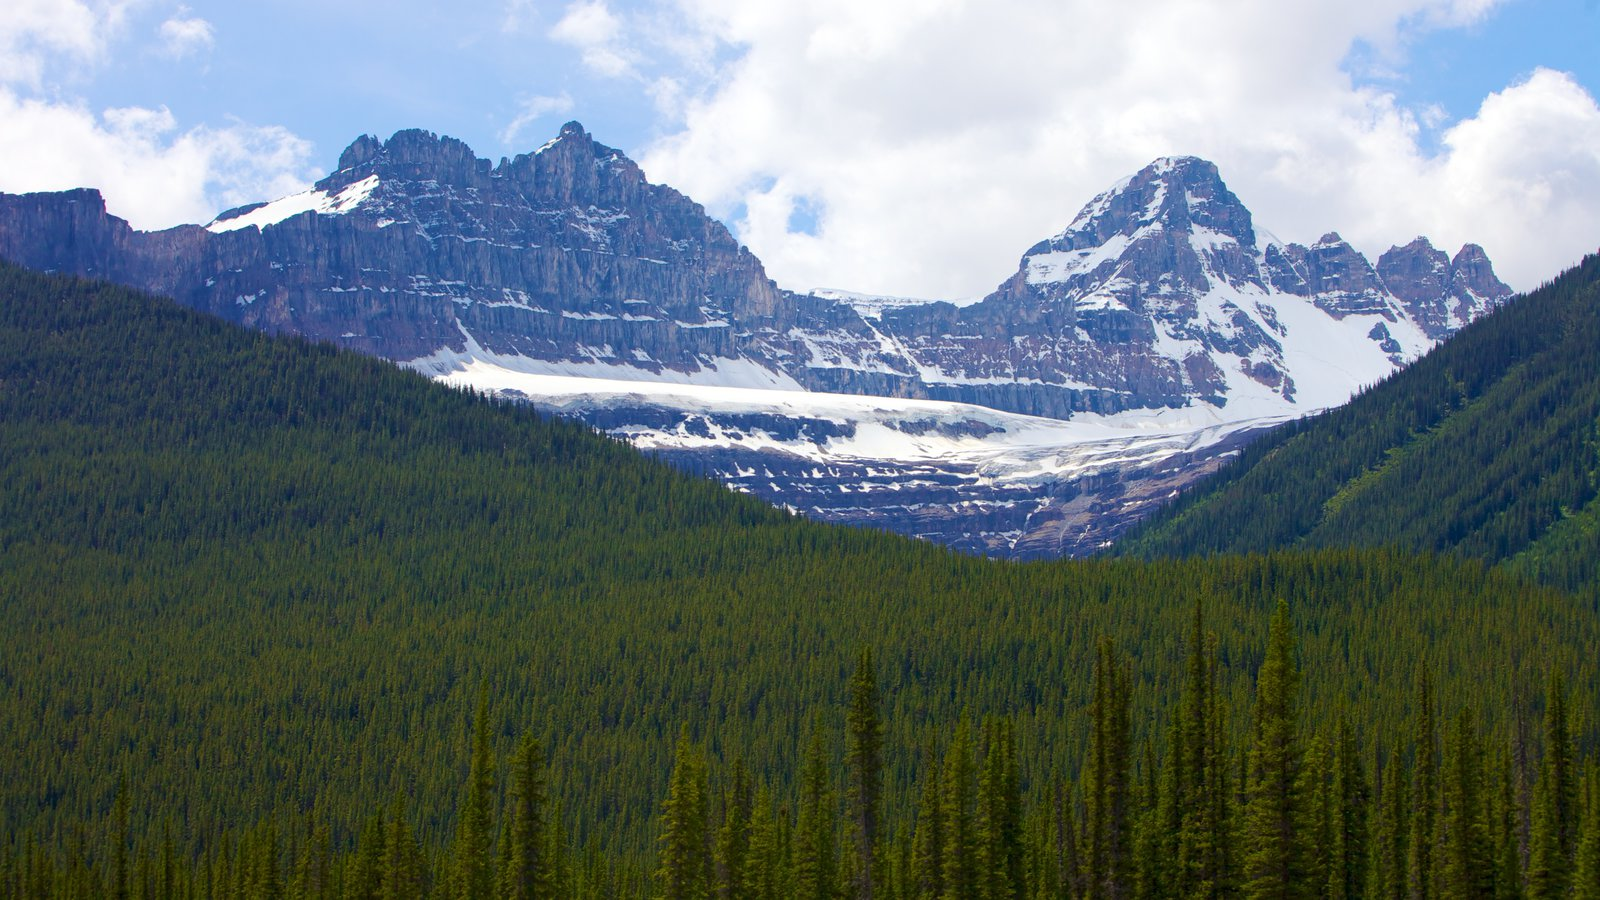 Jasper National Park South Entrance which includes mountains and landscape views